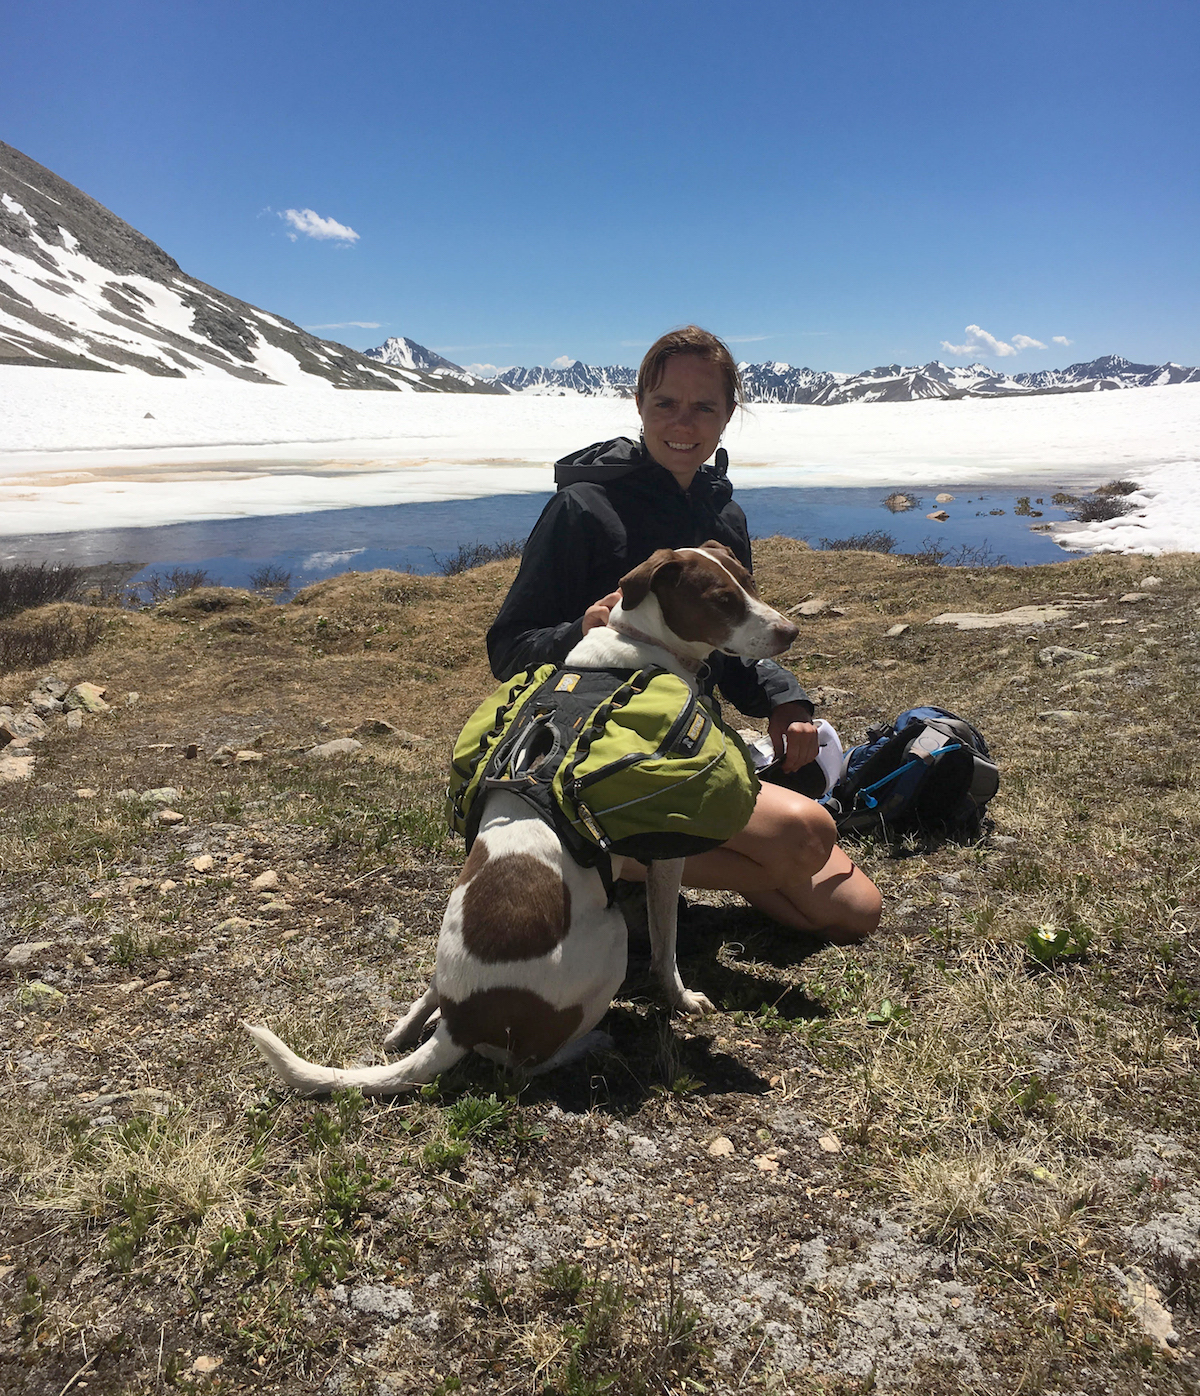 Mandi Franz explores the high country with Soleil the dog during an overnight trip on Independence Pass, Colorado. [Photo] Derek Franz